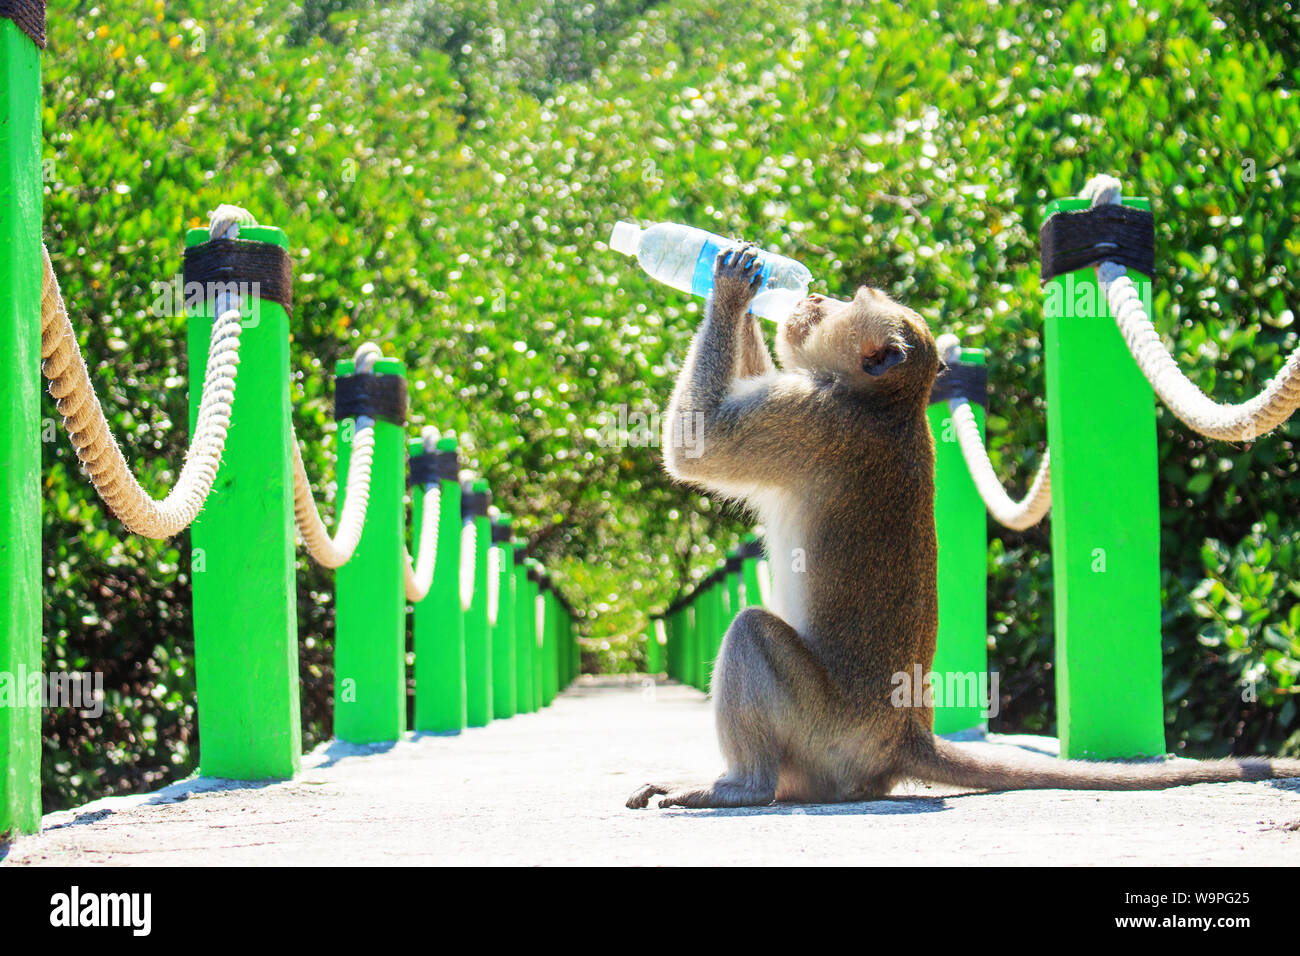 A Monkey Sitting in The Middle Bridge Holding Drink Water From Bottle Stock Photo